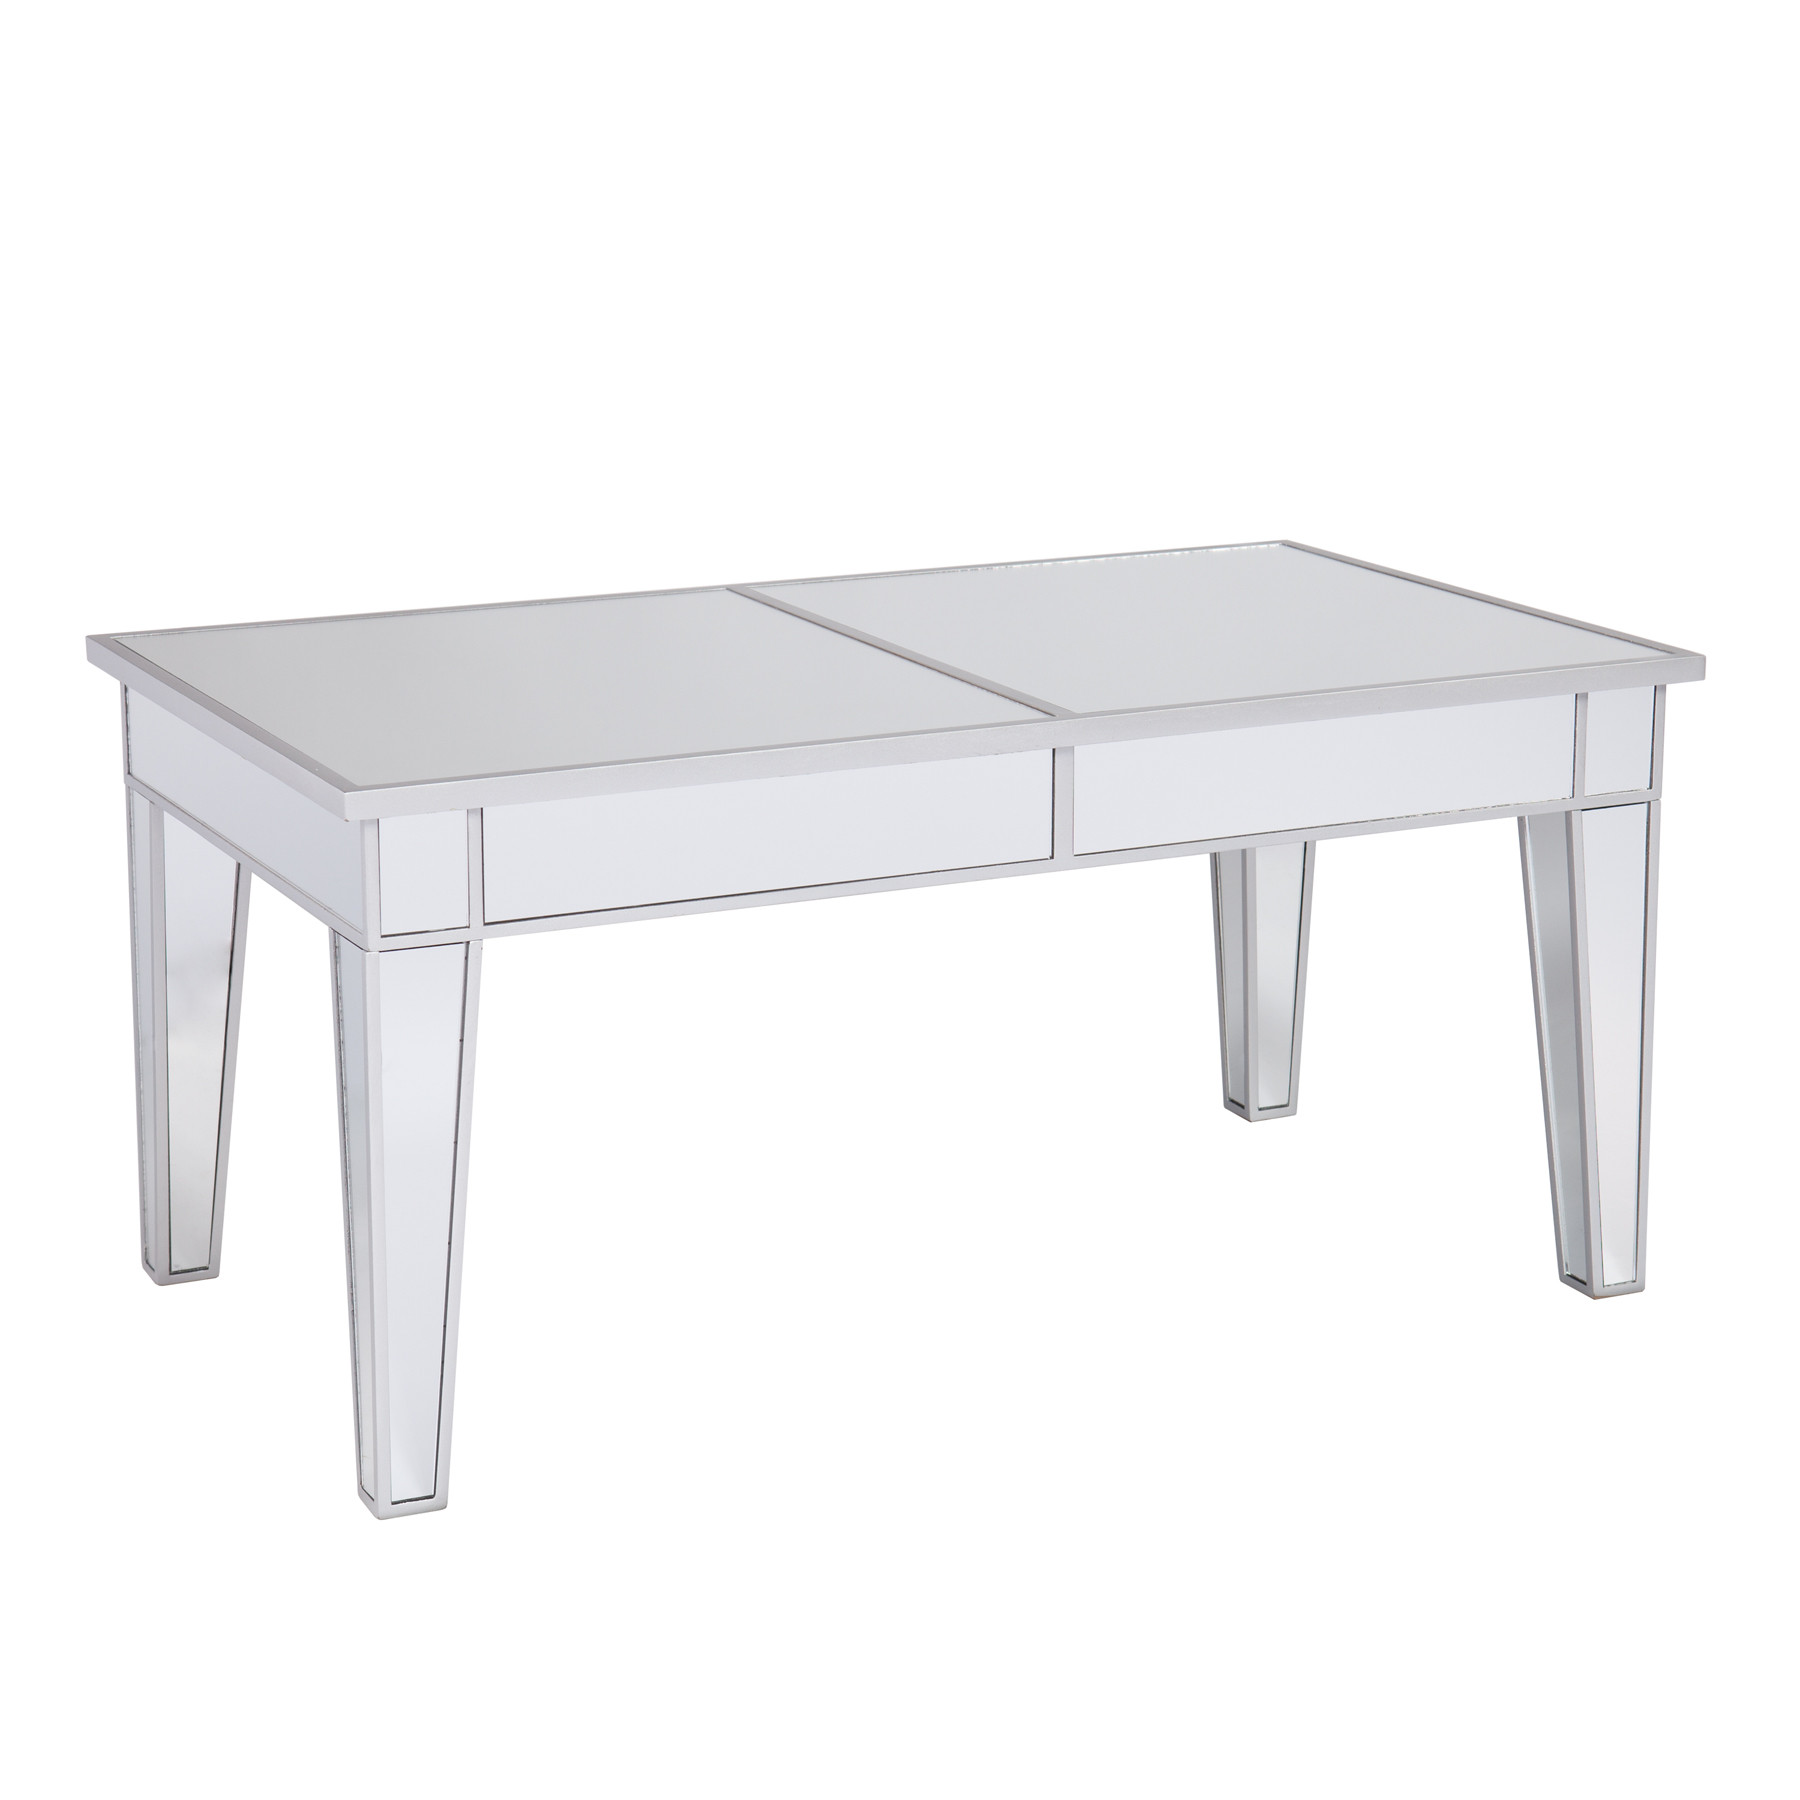 Mirrored Coffee Table | Glass Nesting Coffee Tables | Mirrored Corner Table